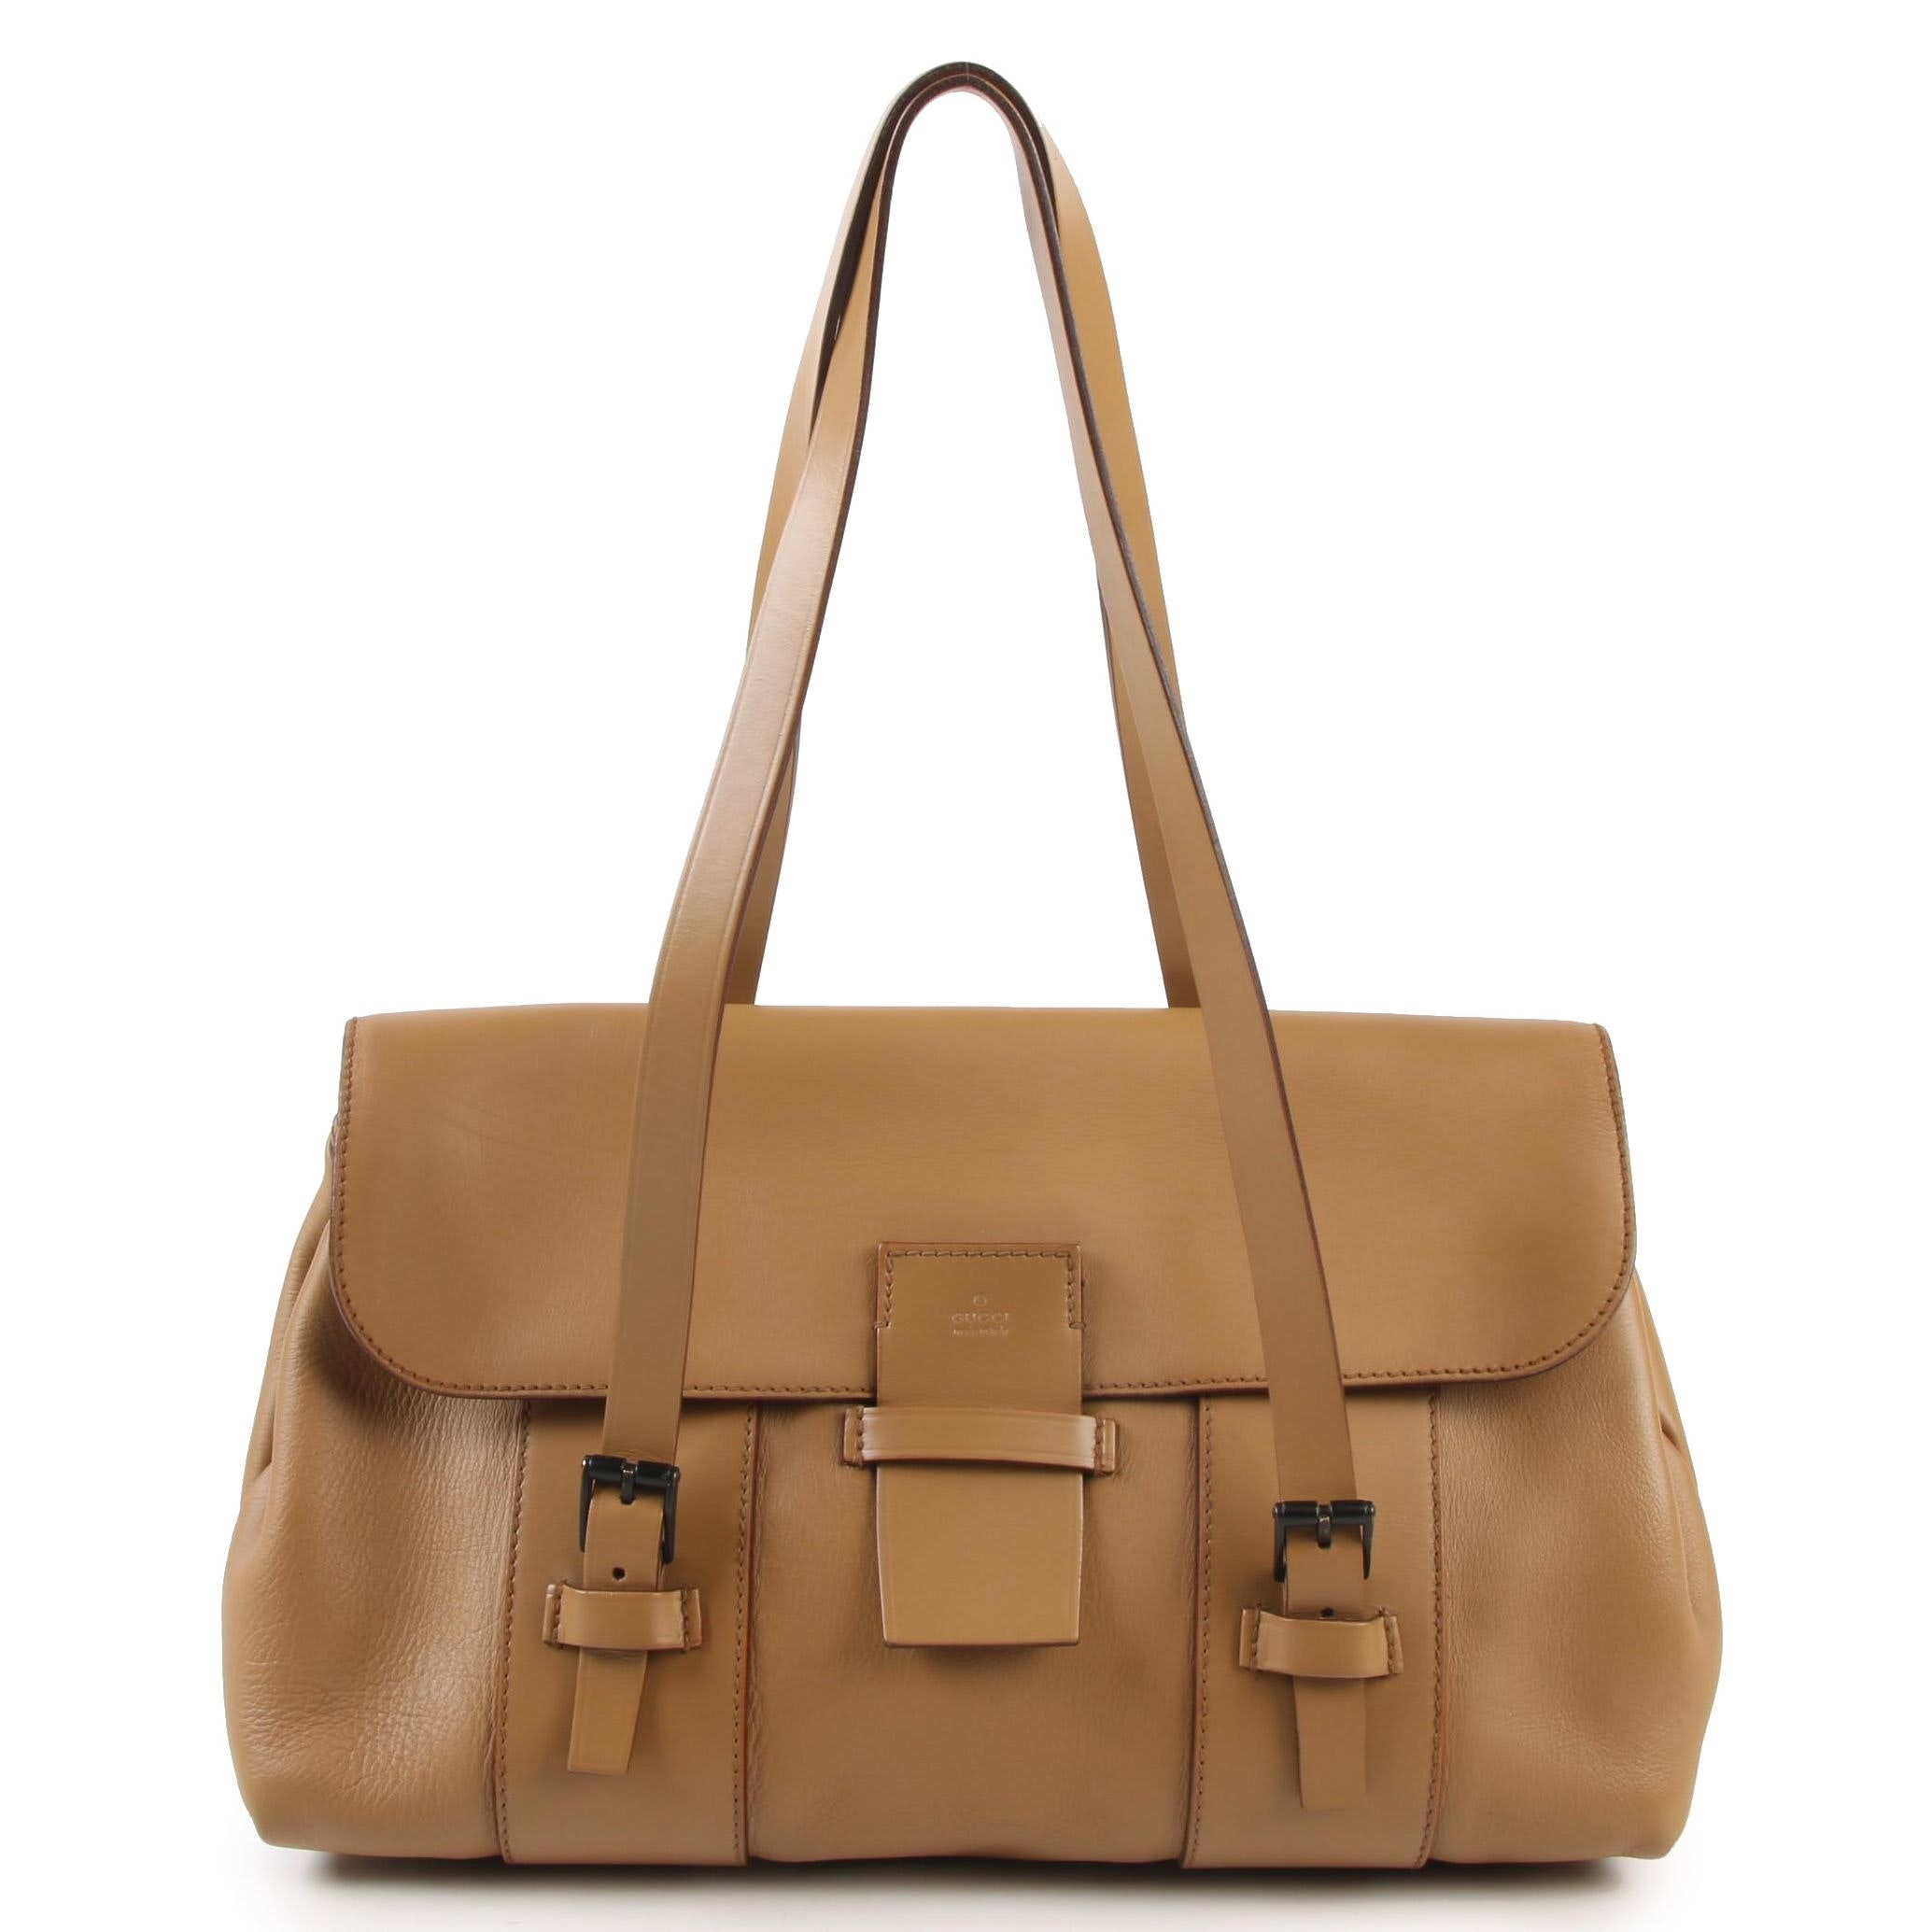 Gucci Flap Front Drawstring Shoulder Bag in Tan Leather with Buckle Straps